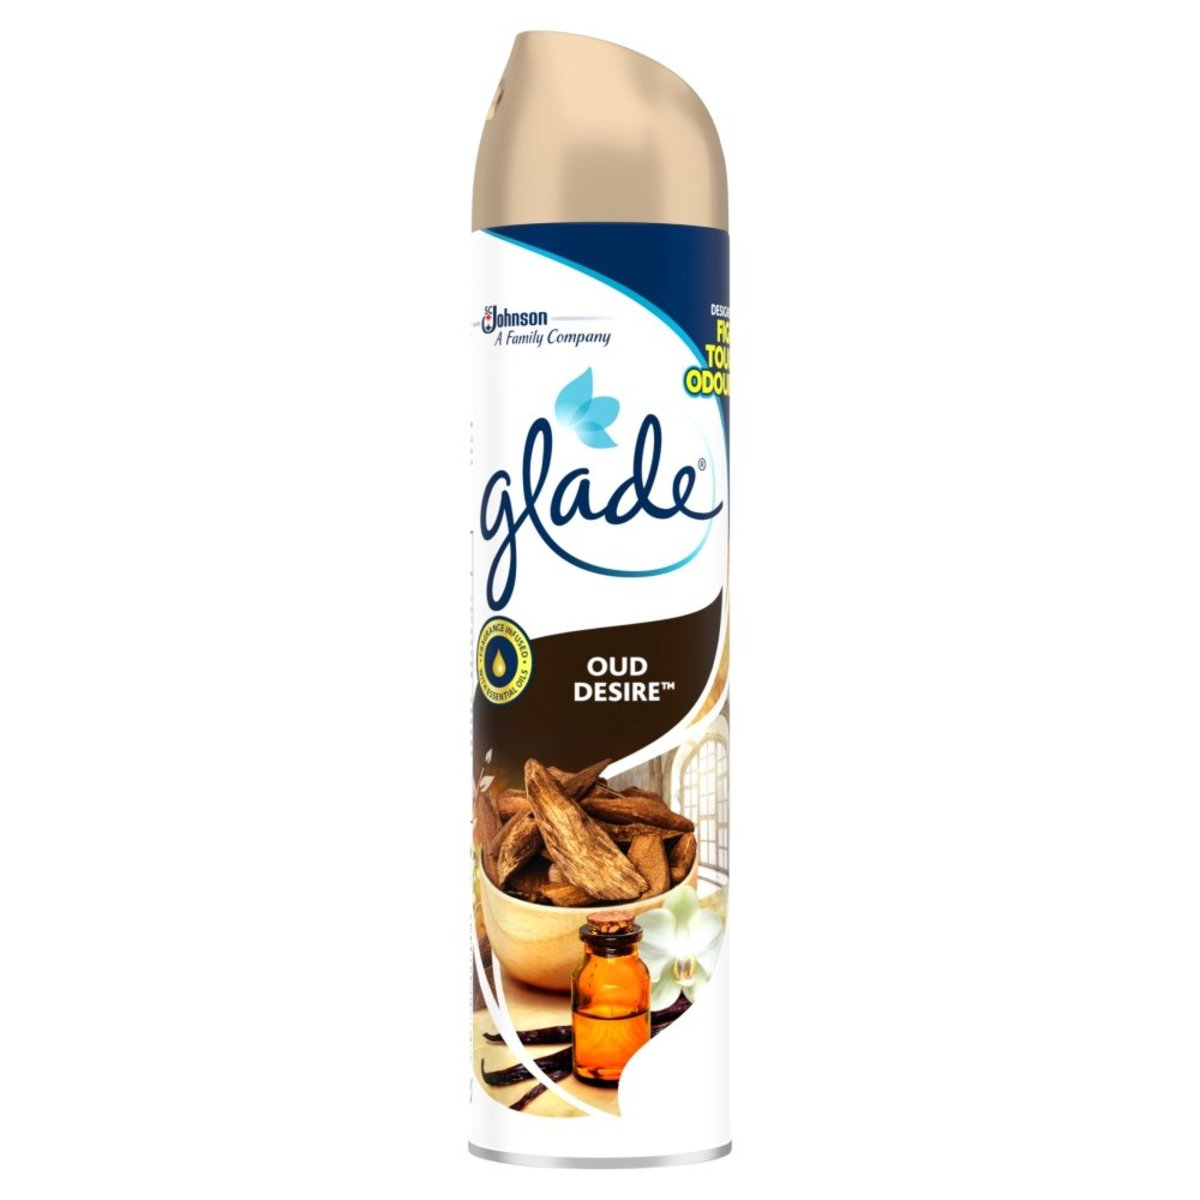 Glade Air Refresher Spray 300ml - OUD Desire [Parallel Import Product]